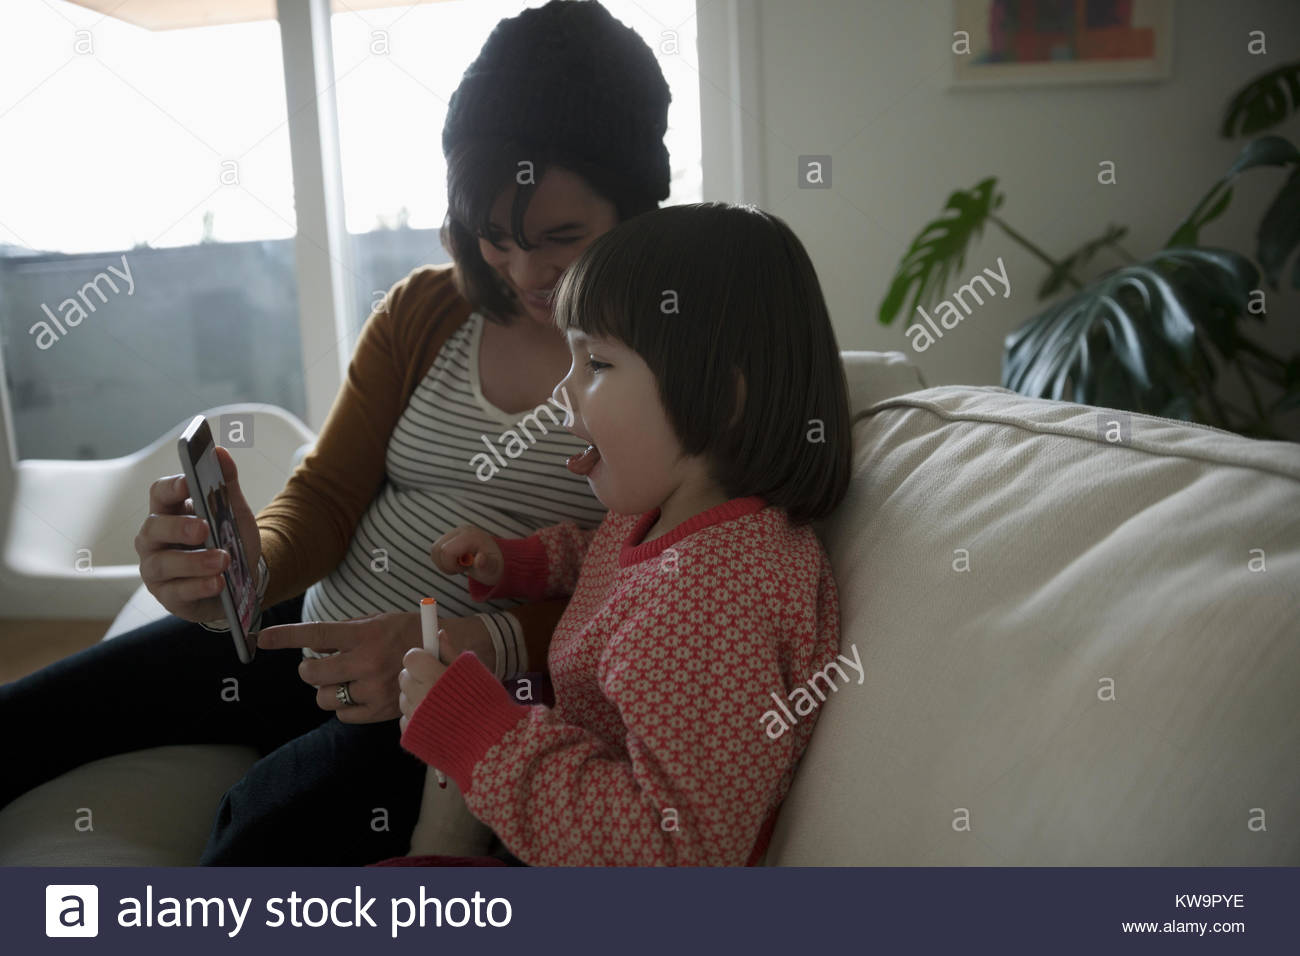 Pregnant mother showing smart phone to toddler daughter on sofa - Stock Image